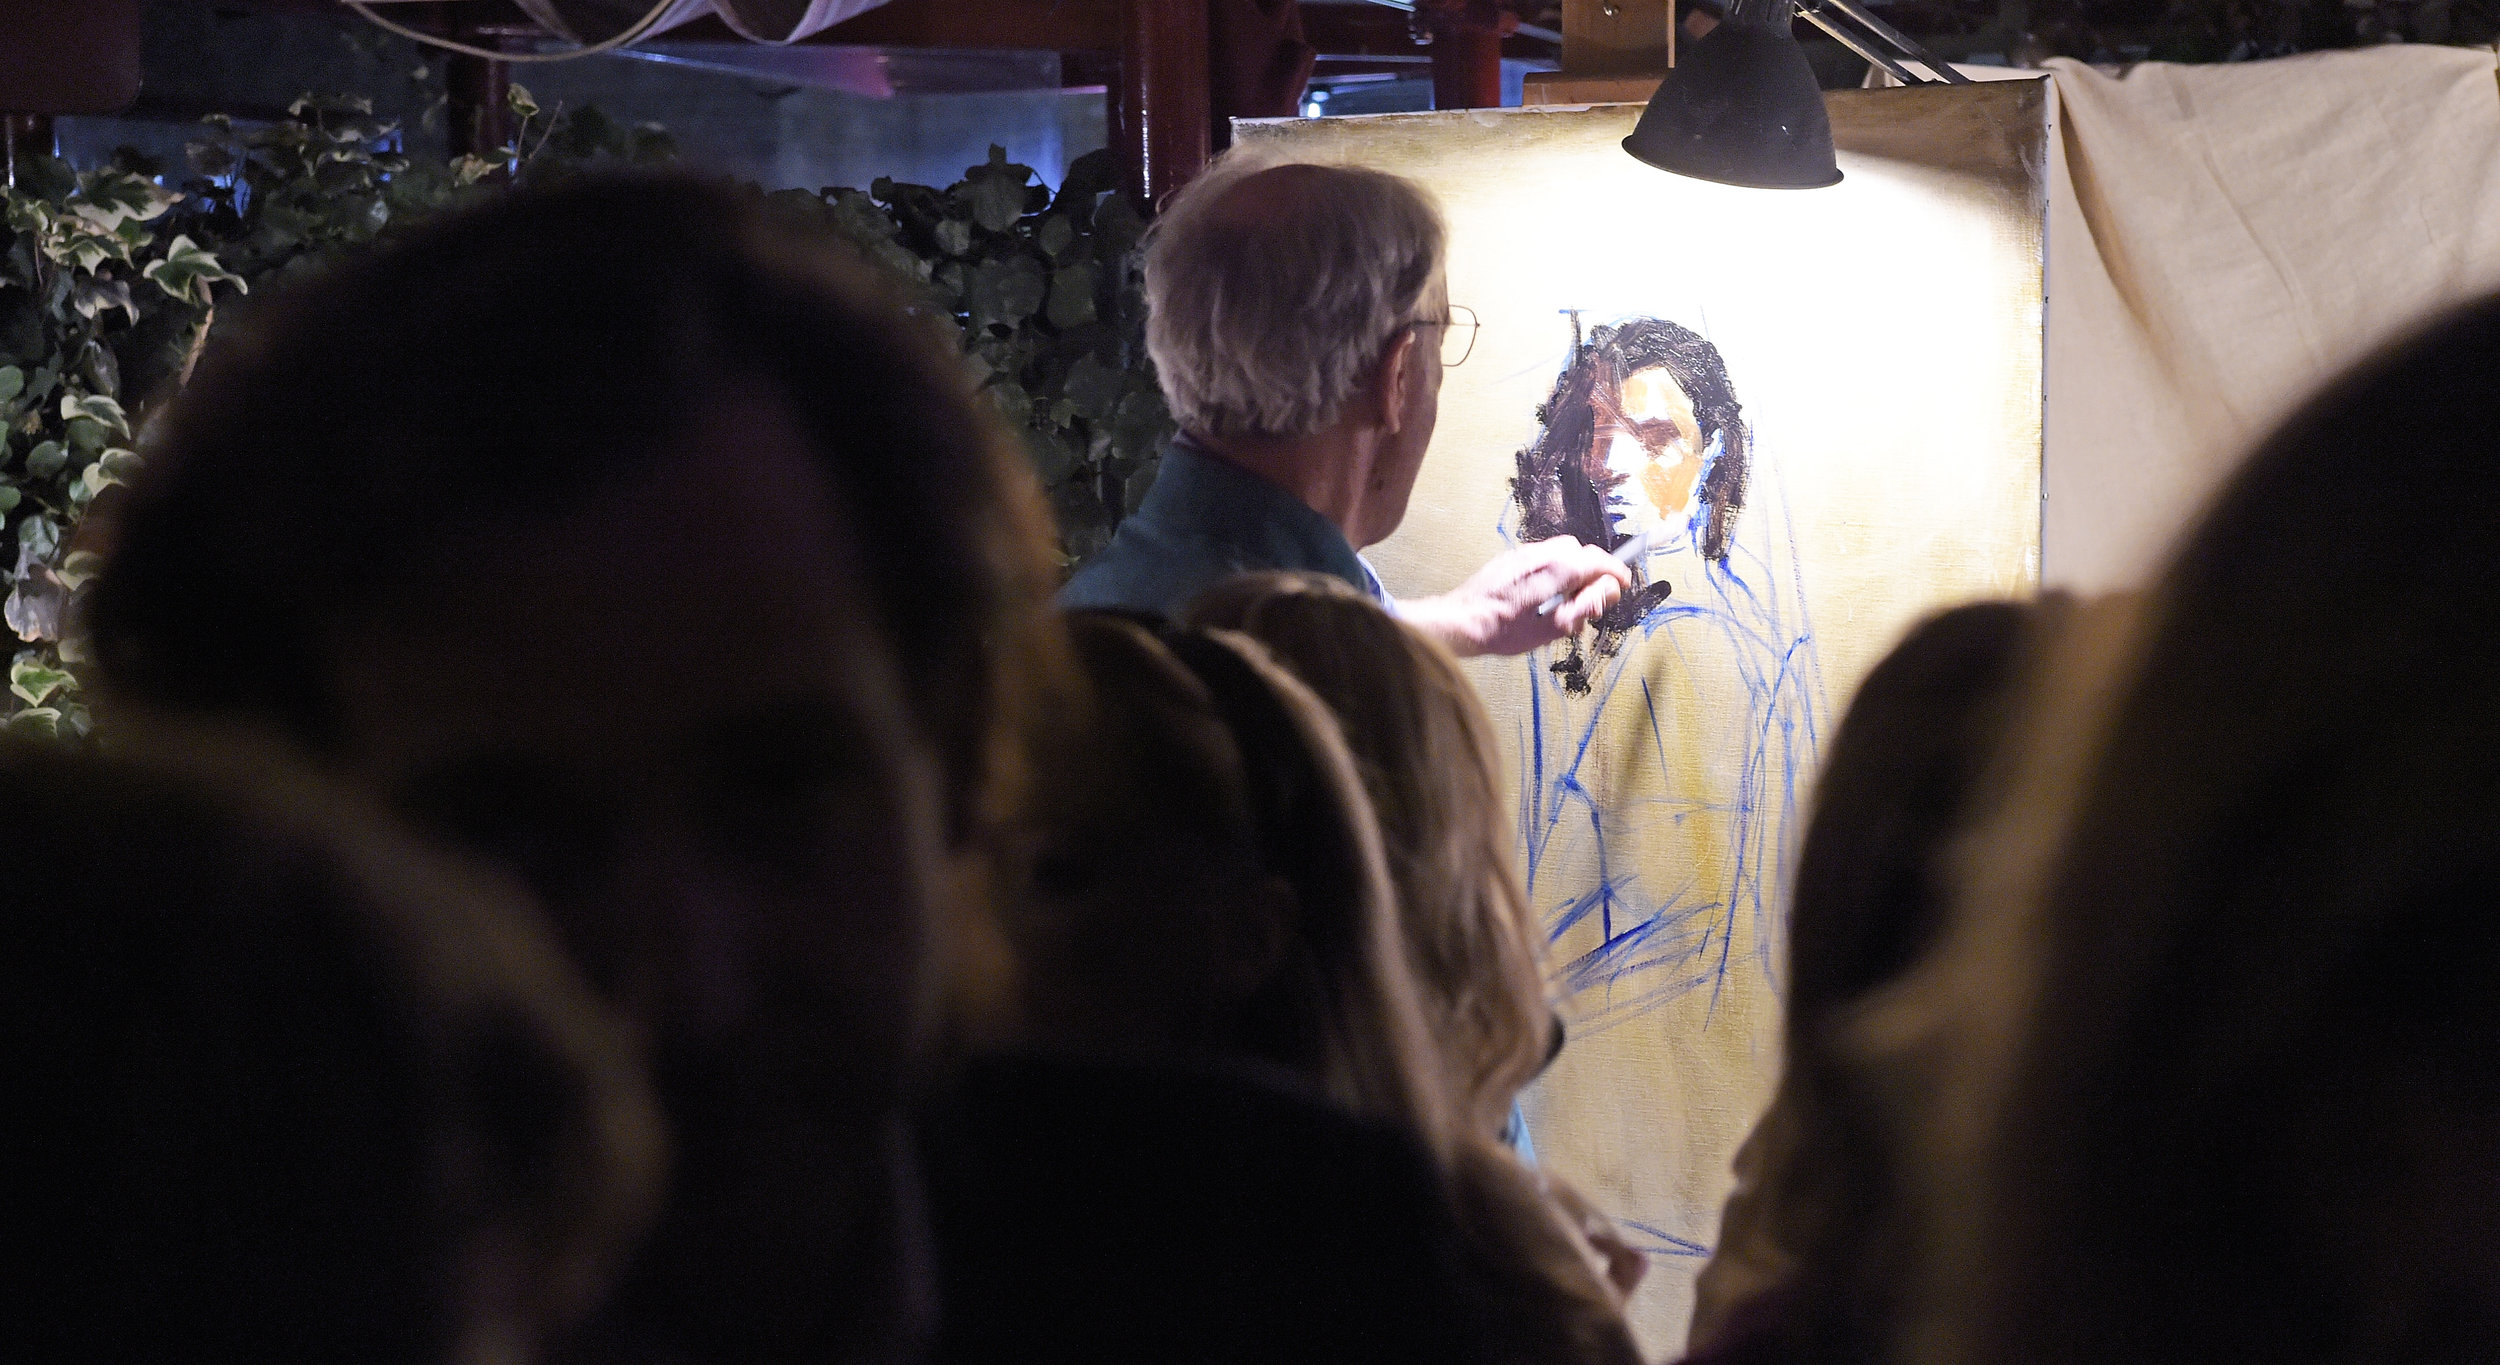 DMB-Live Painting at Mark s Club with Nicky Philipps and Nick Bashall018 .JPG